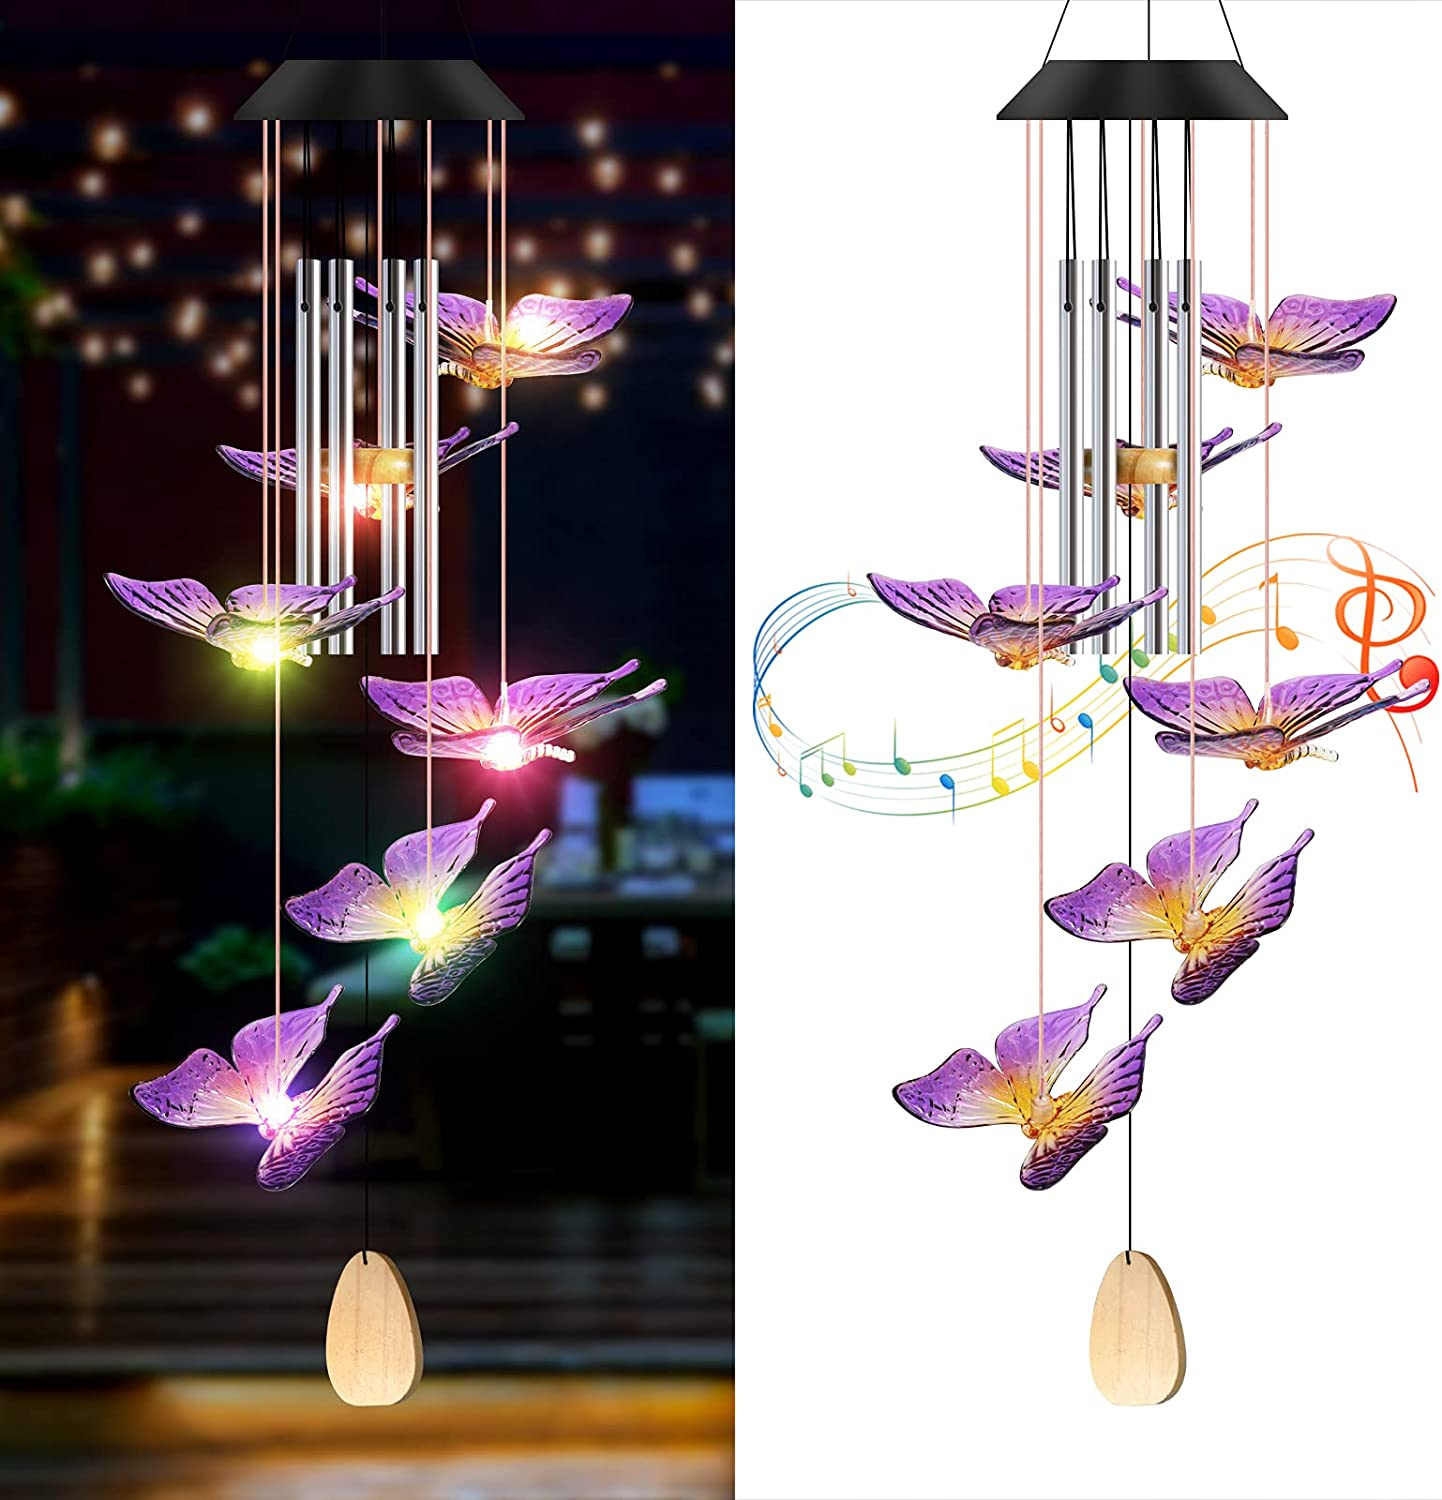 YNGRUE Solar Butterfly Wind Chimes, Outdoor Solar Wind Chime Colors Changing Six Butterfly Waterproof LED Decorative Patio Lights, Decor for Garden, Patio, Yard, Home Gifts for Mom Grandma